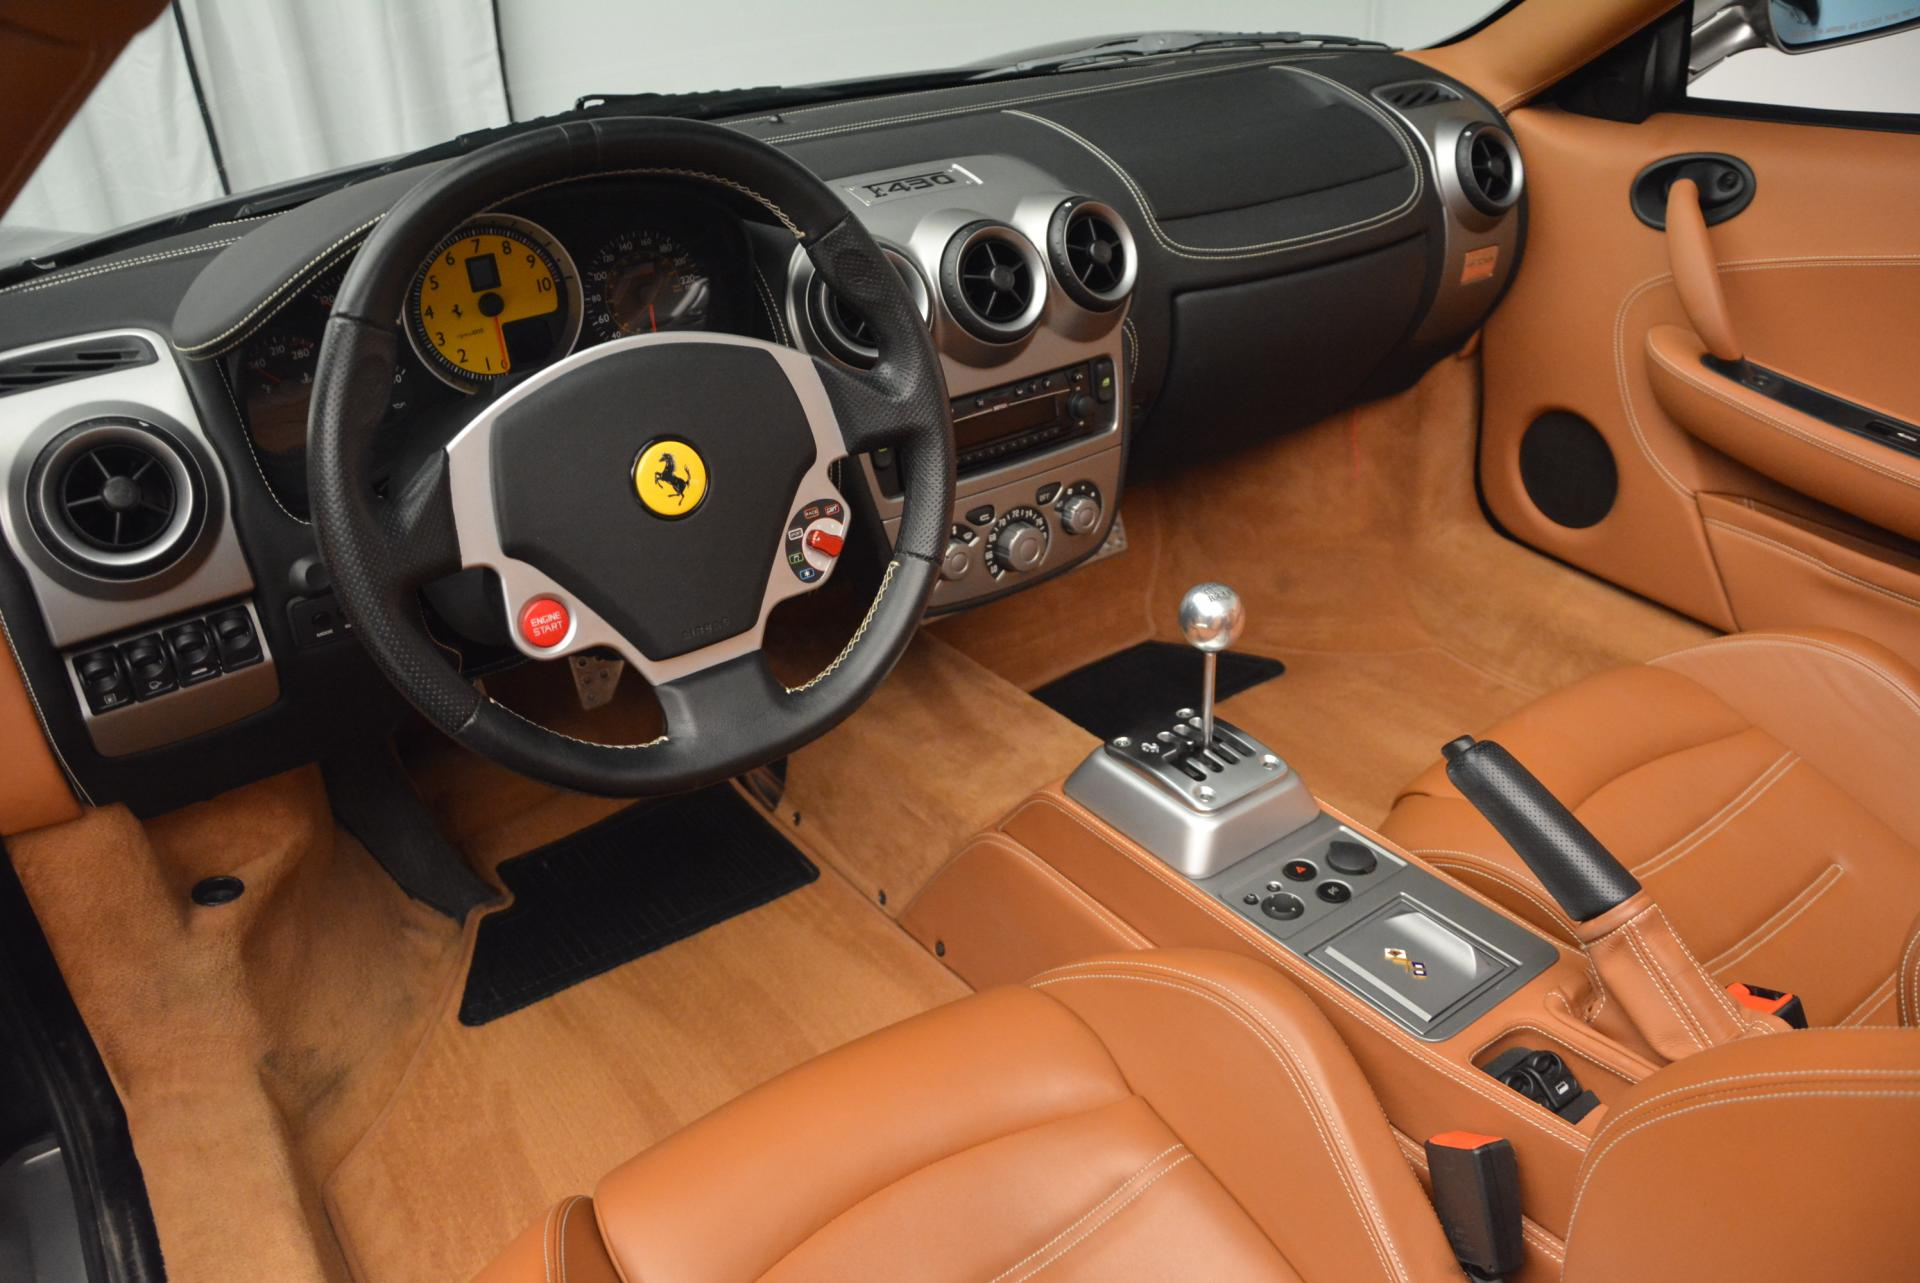 Used 2005 Ferrari F430 Spider 6-Speed Manual For Sale In Greenwich, CT 135_p25